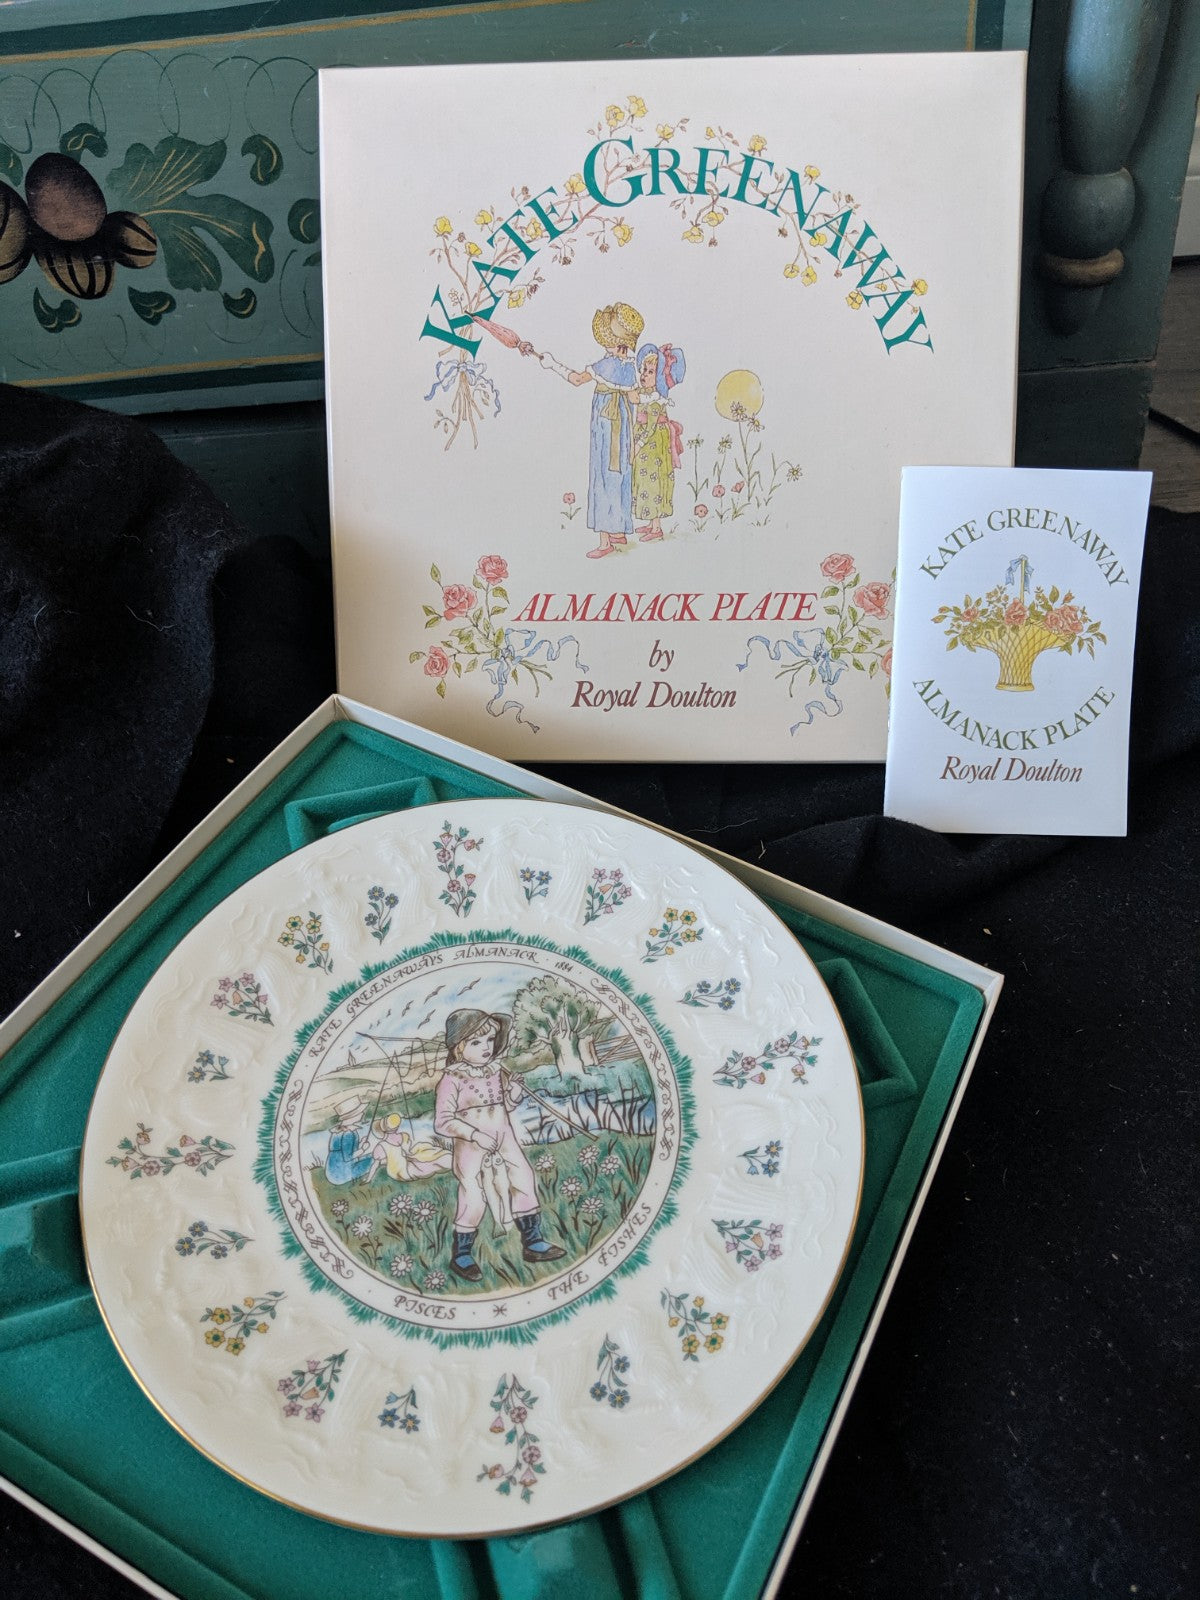 Kate Greenaway Almanack Plate by Royal Doulton -Pisces